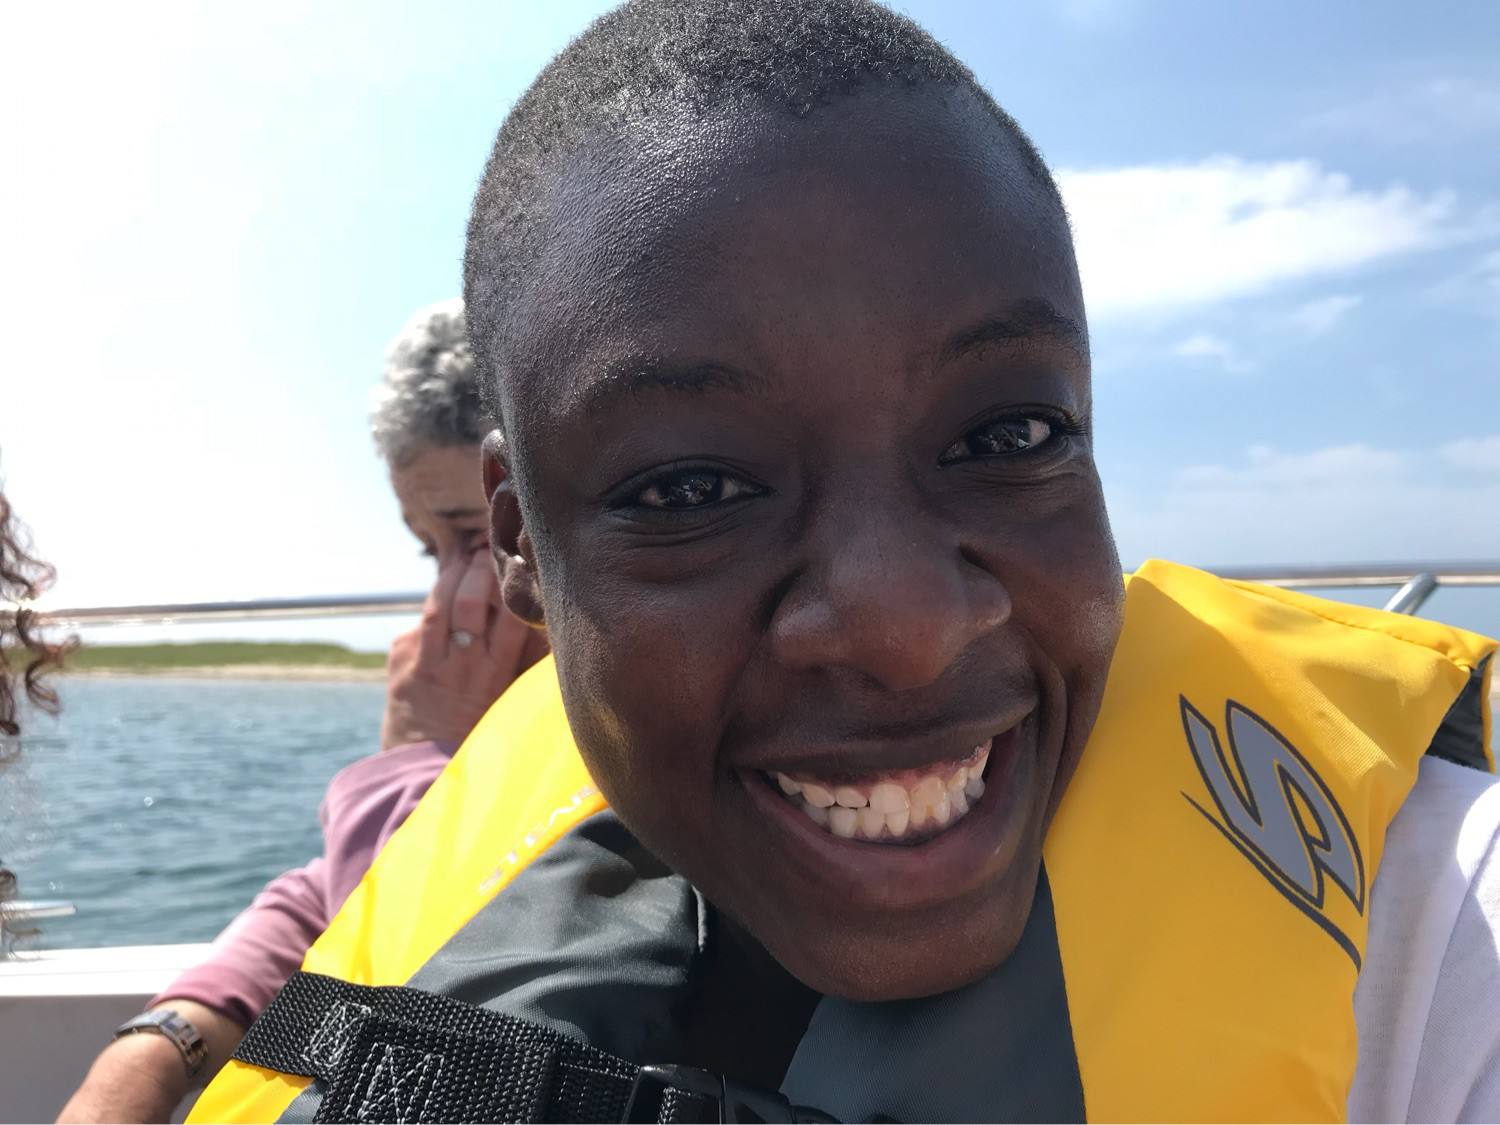 Adama loved driving the boat!